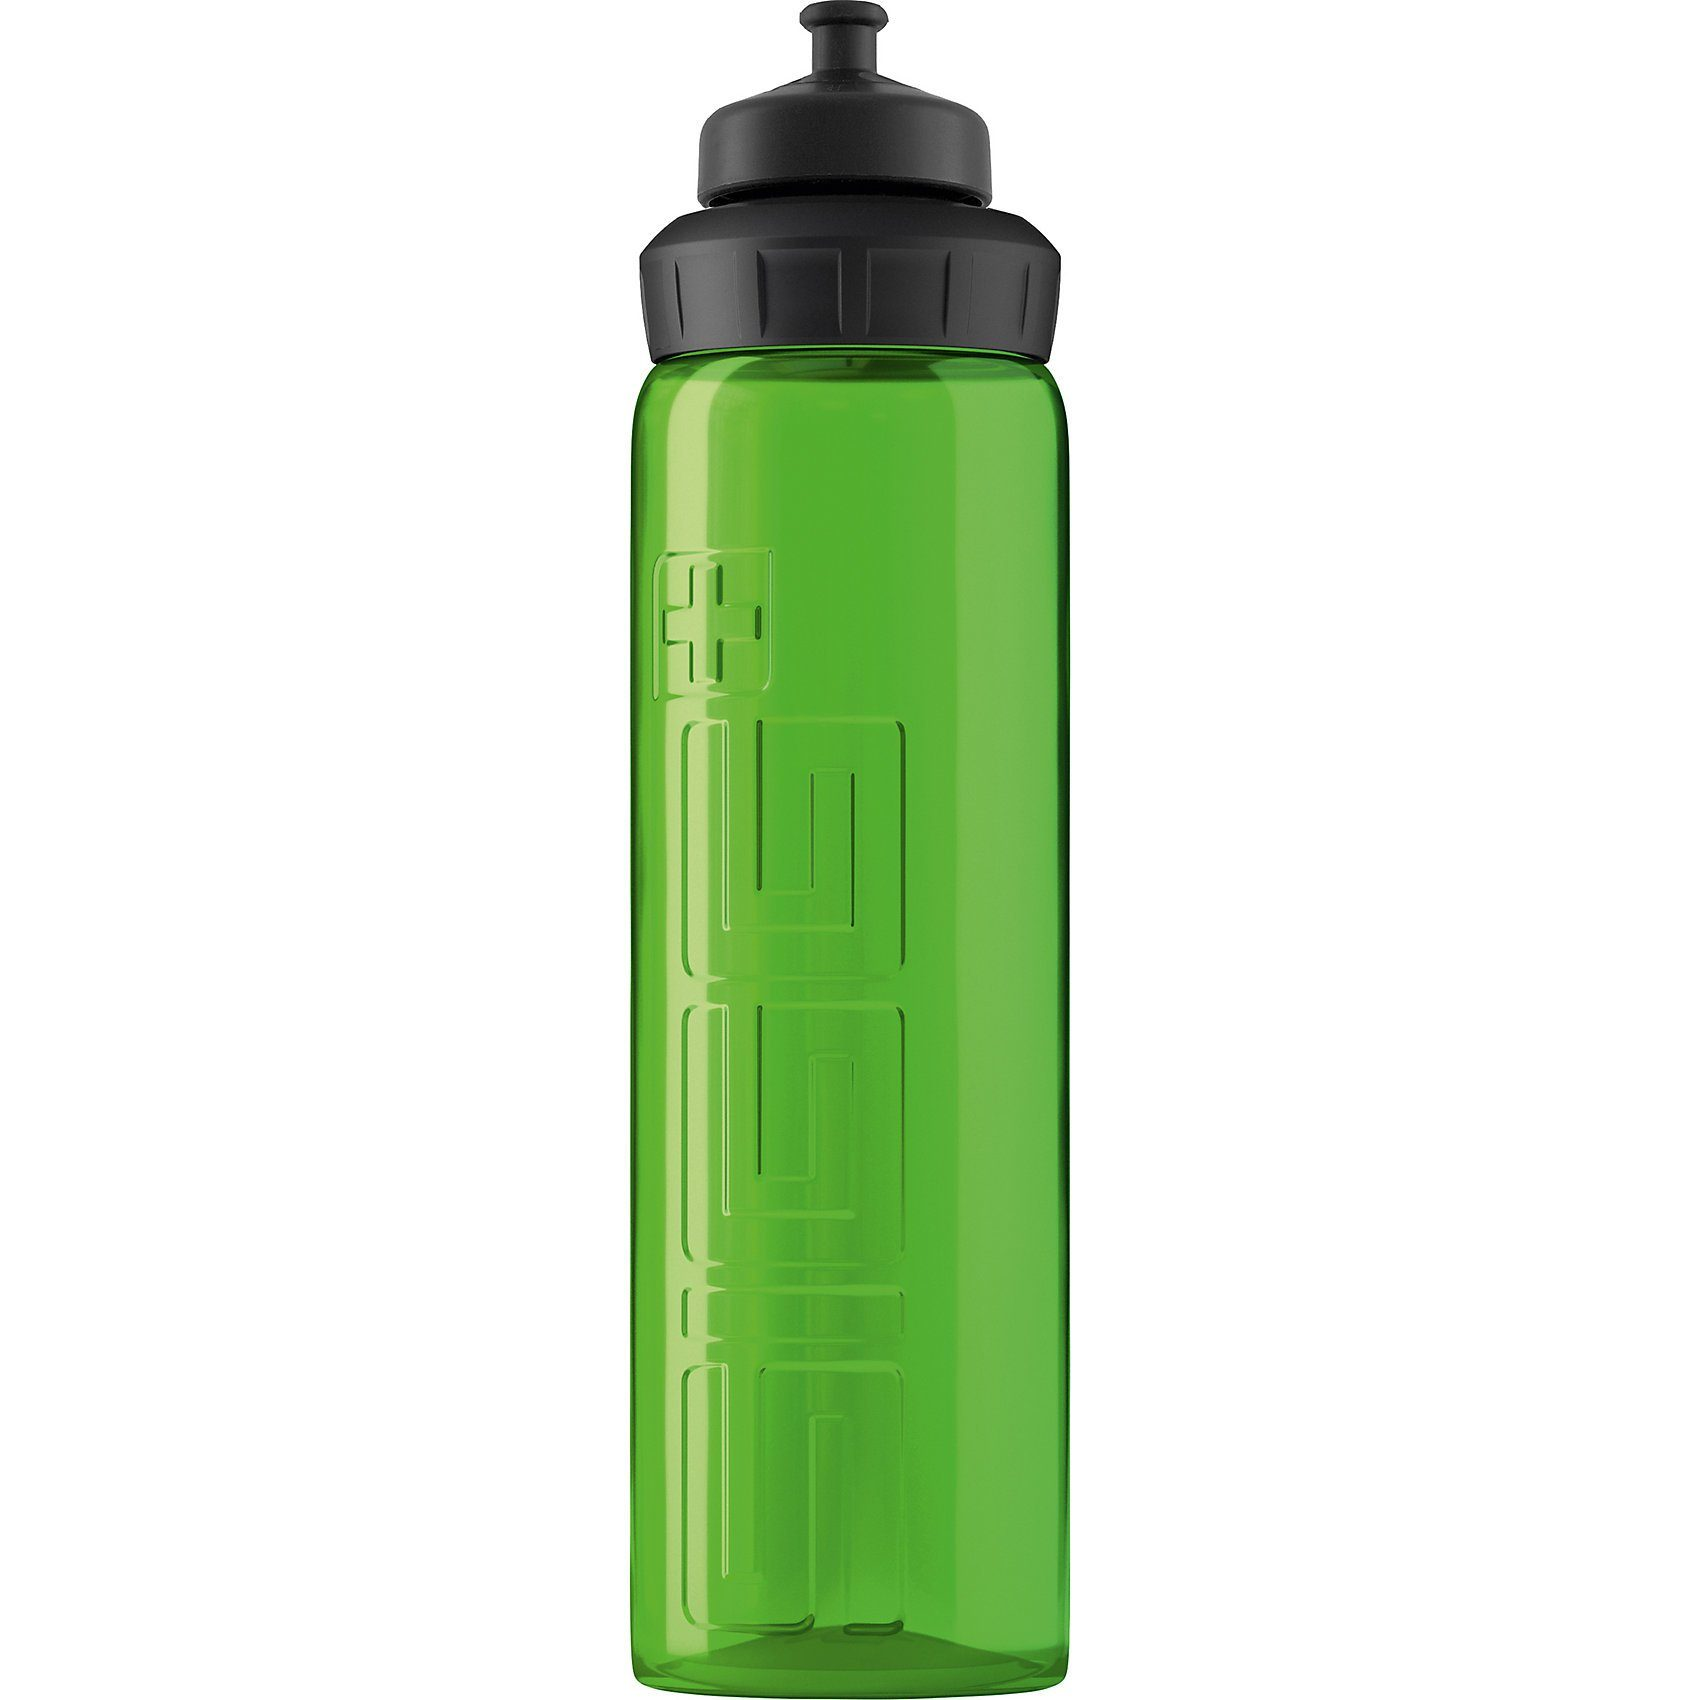 SIGG PP-Trinkflasche VIVA 3-STAGE Green, 750 ml